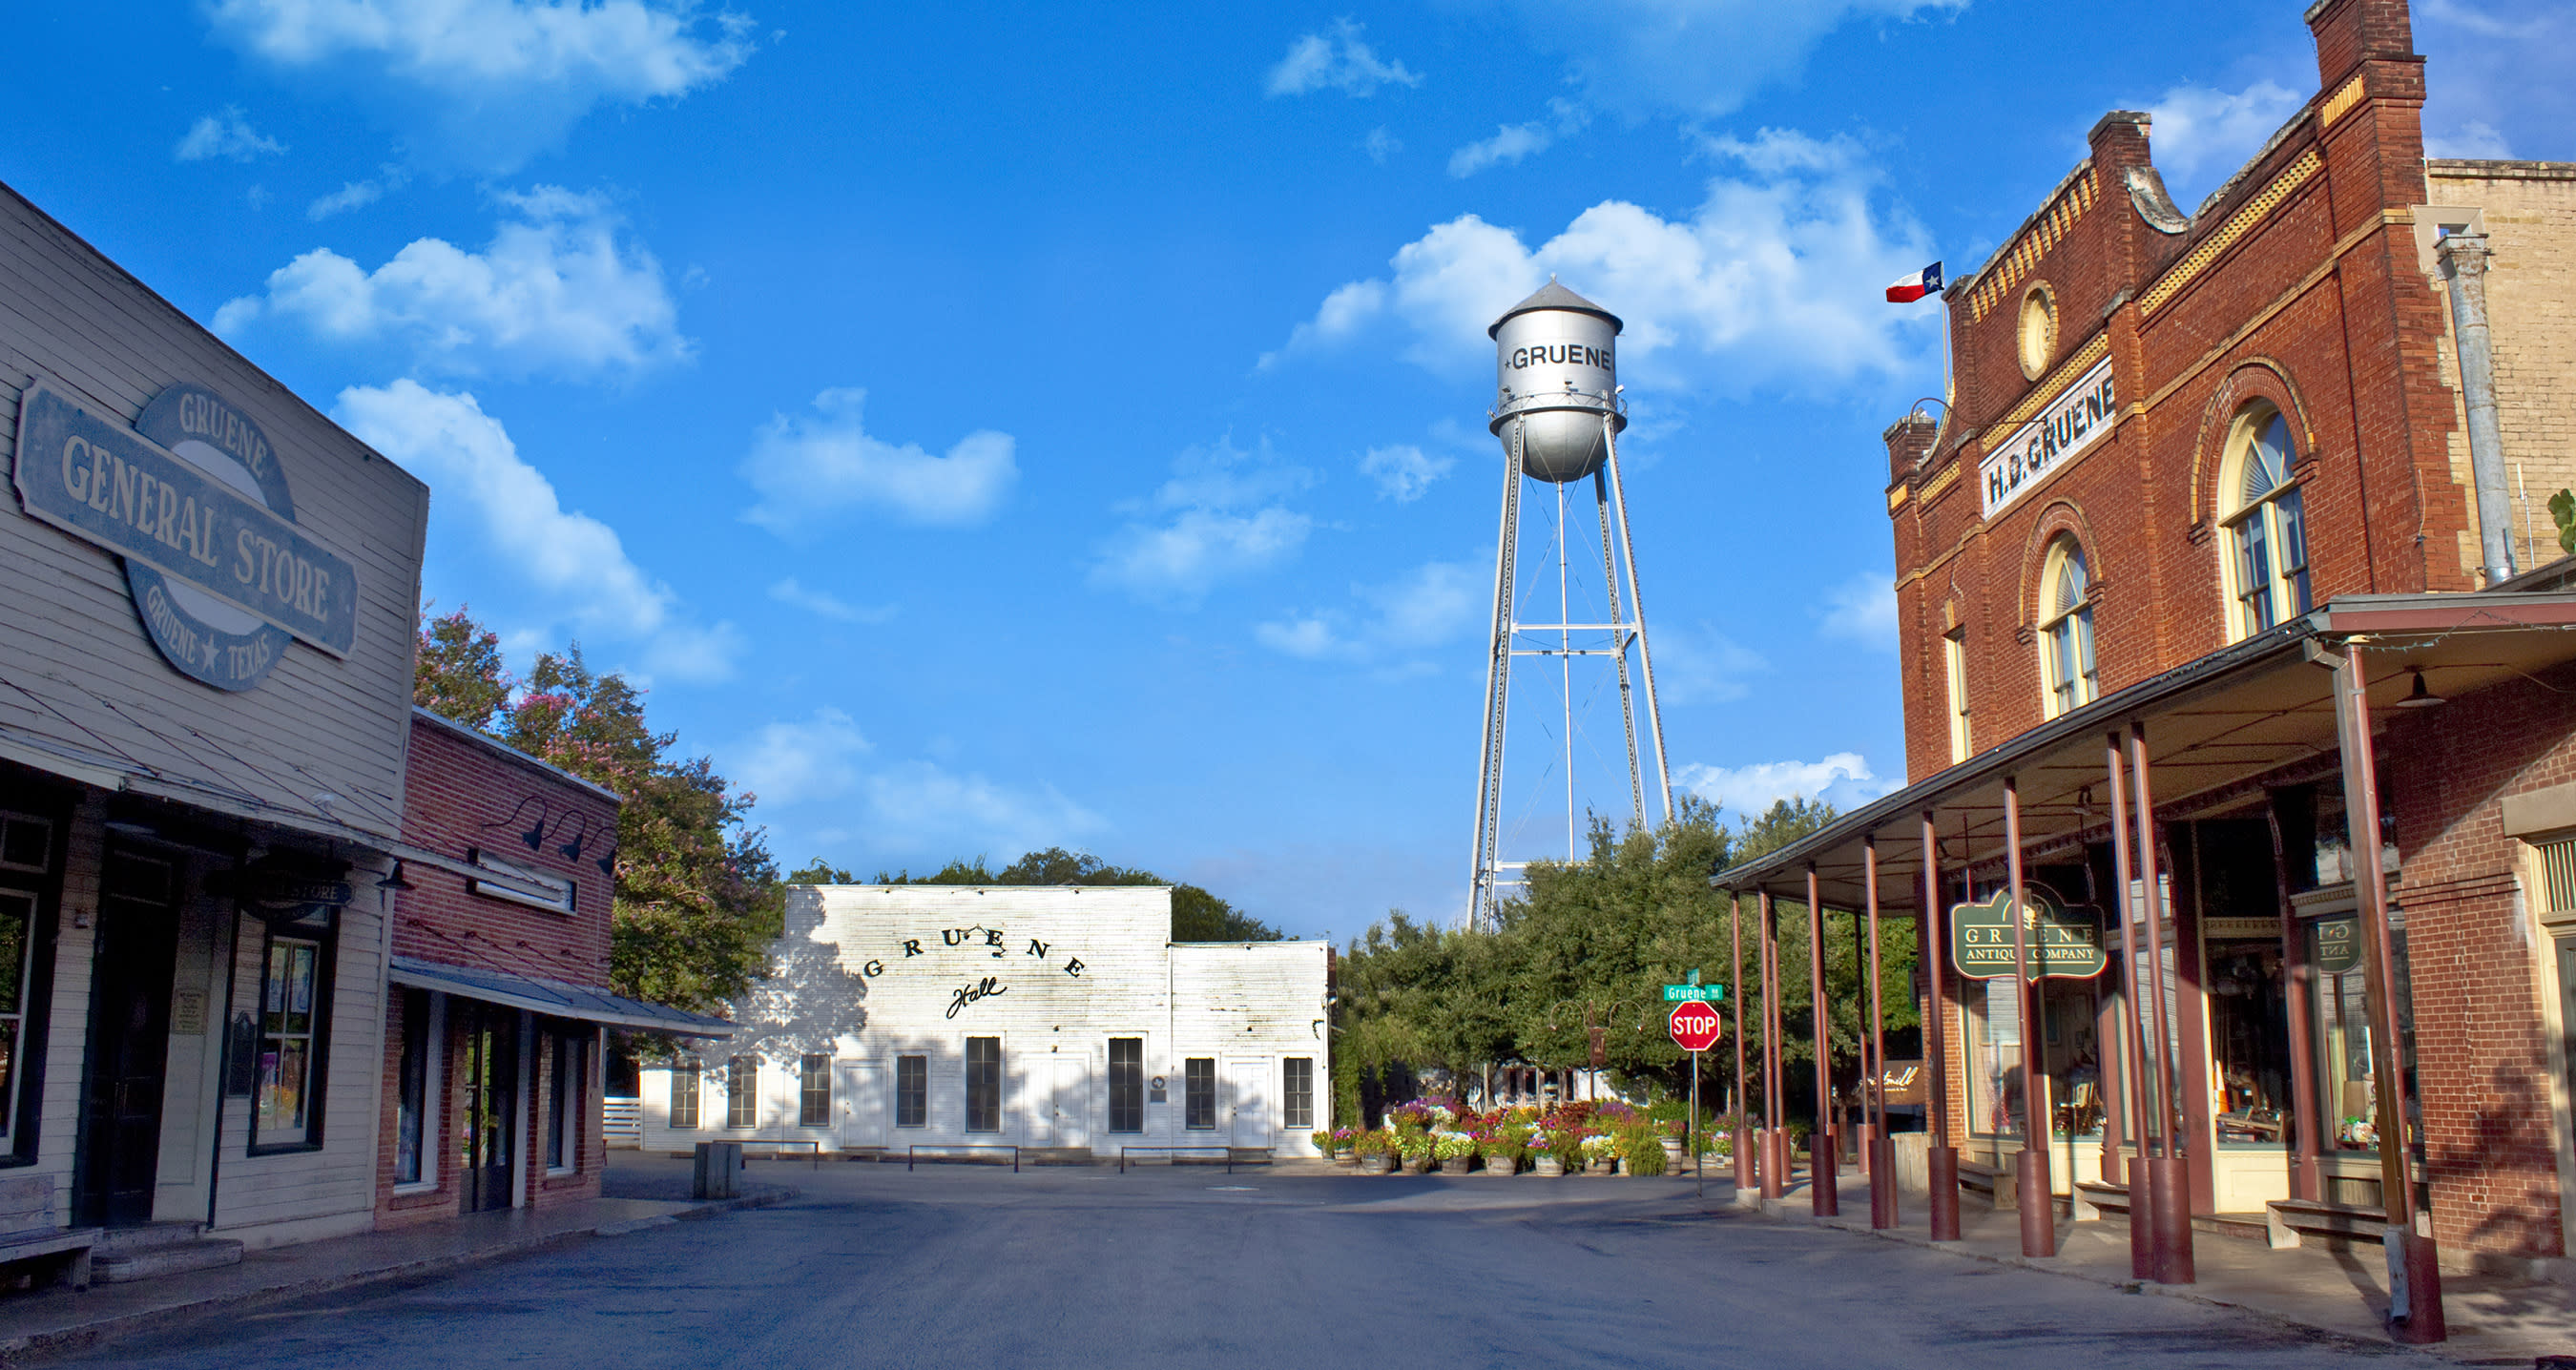 Gently resisting change since 1872, Gruene Historic District is home to Texas' oldest dance hall that hosts legendary musicians like George Strait, Willie Nelson, Merle Haggard and Loretta Lynn. Garth Brooks played Gruene Hall last September as part of his Dive Bar tour.